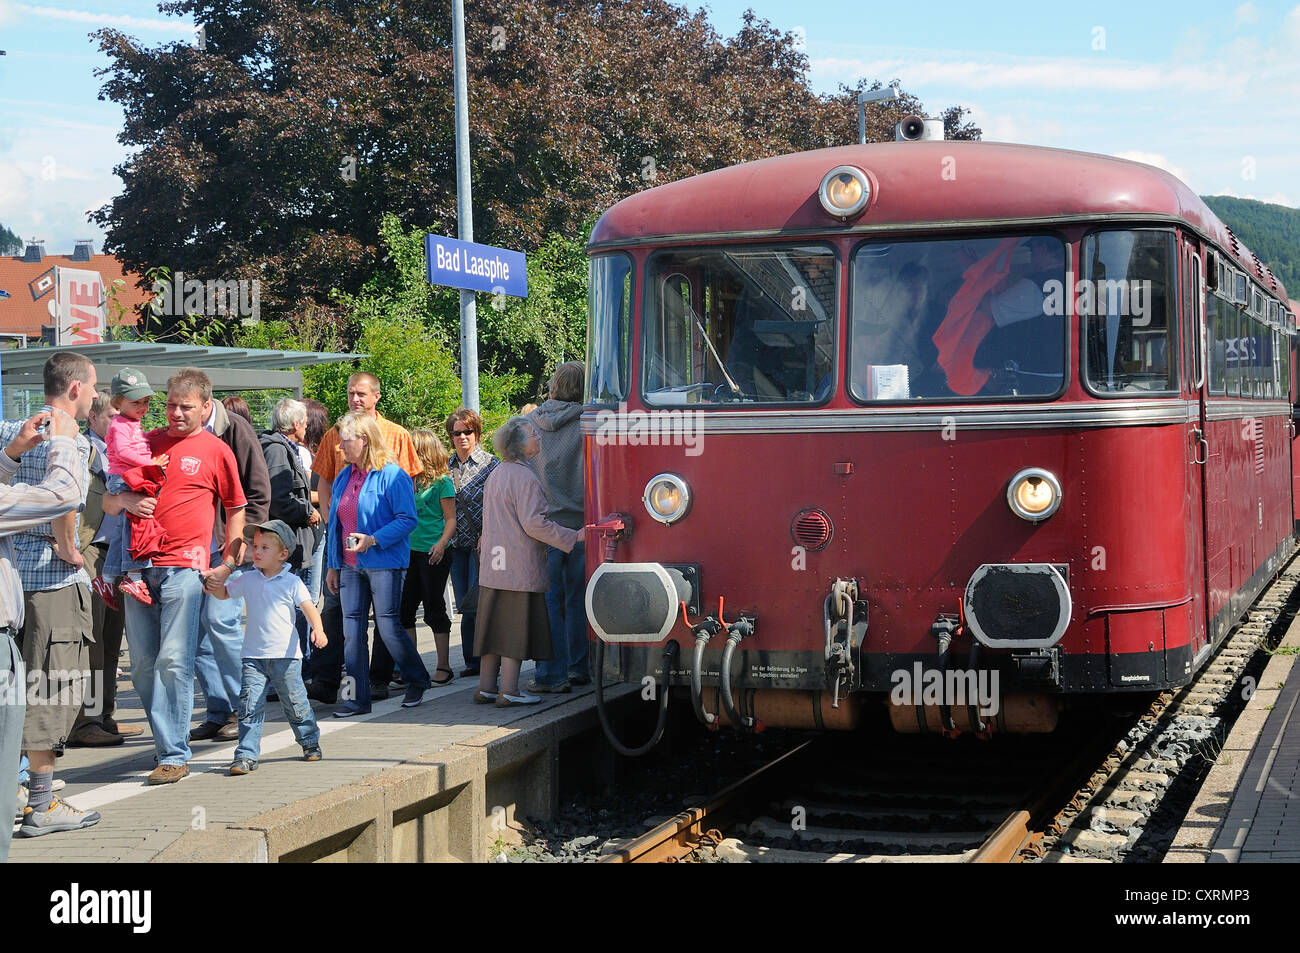 Passengers boarding the German Uerdinger railcar in the train station of Bad Laasphe, Siegen Wittgenstein district - Stock Image